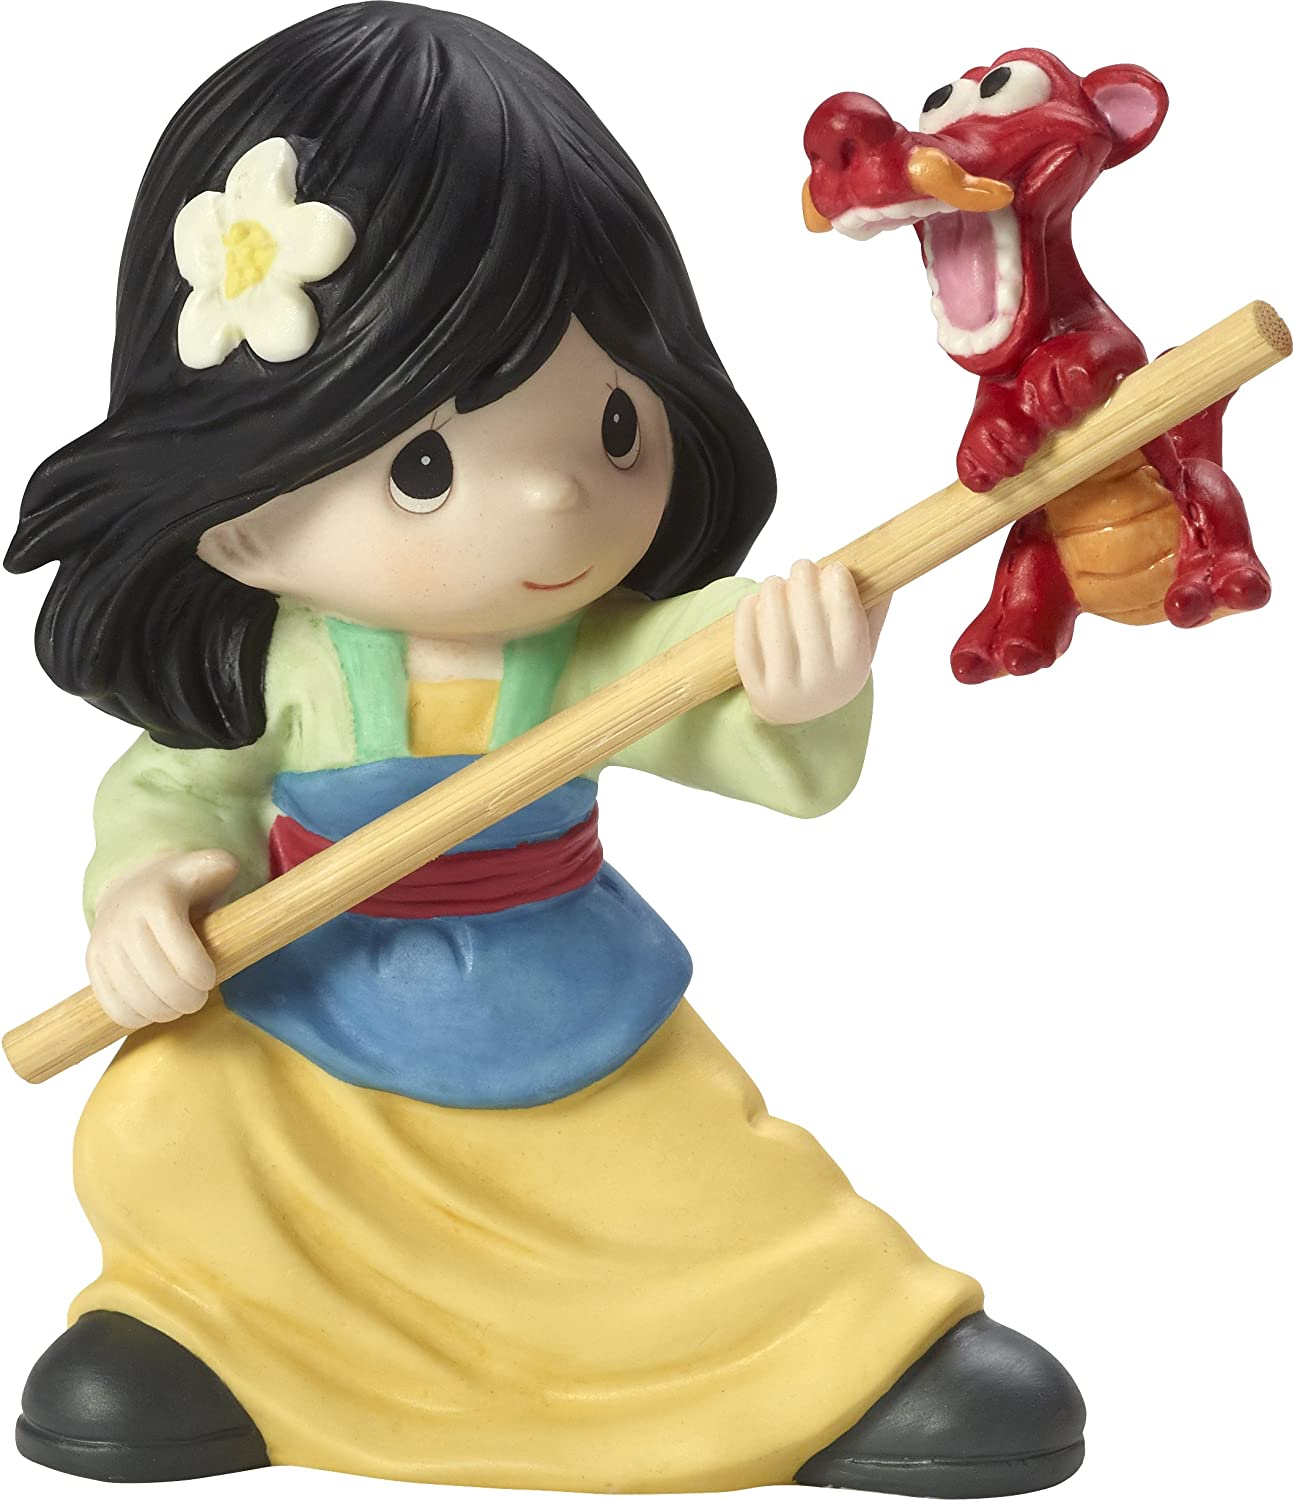 Precious Moments Disney Mulan Together We We Can Do Anything Poreclain Figurine 173091